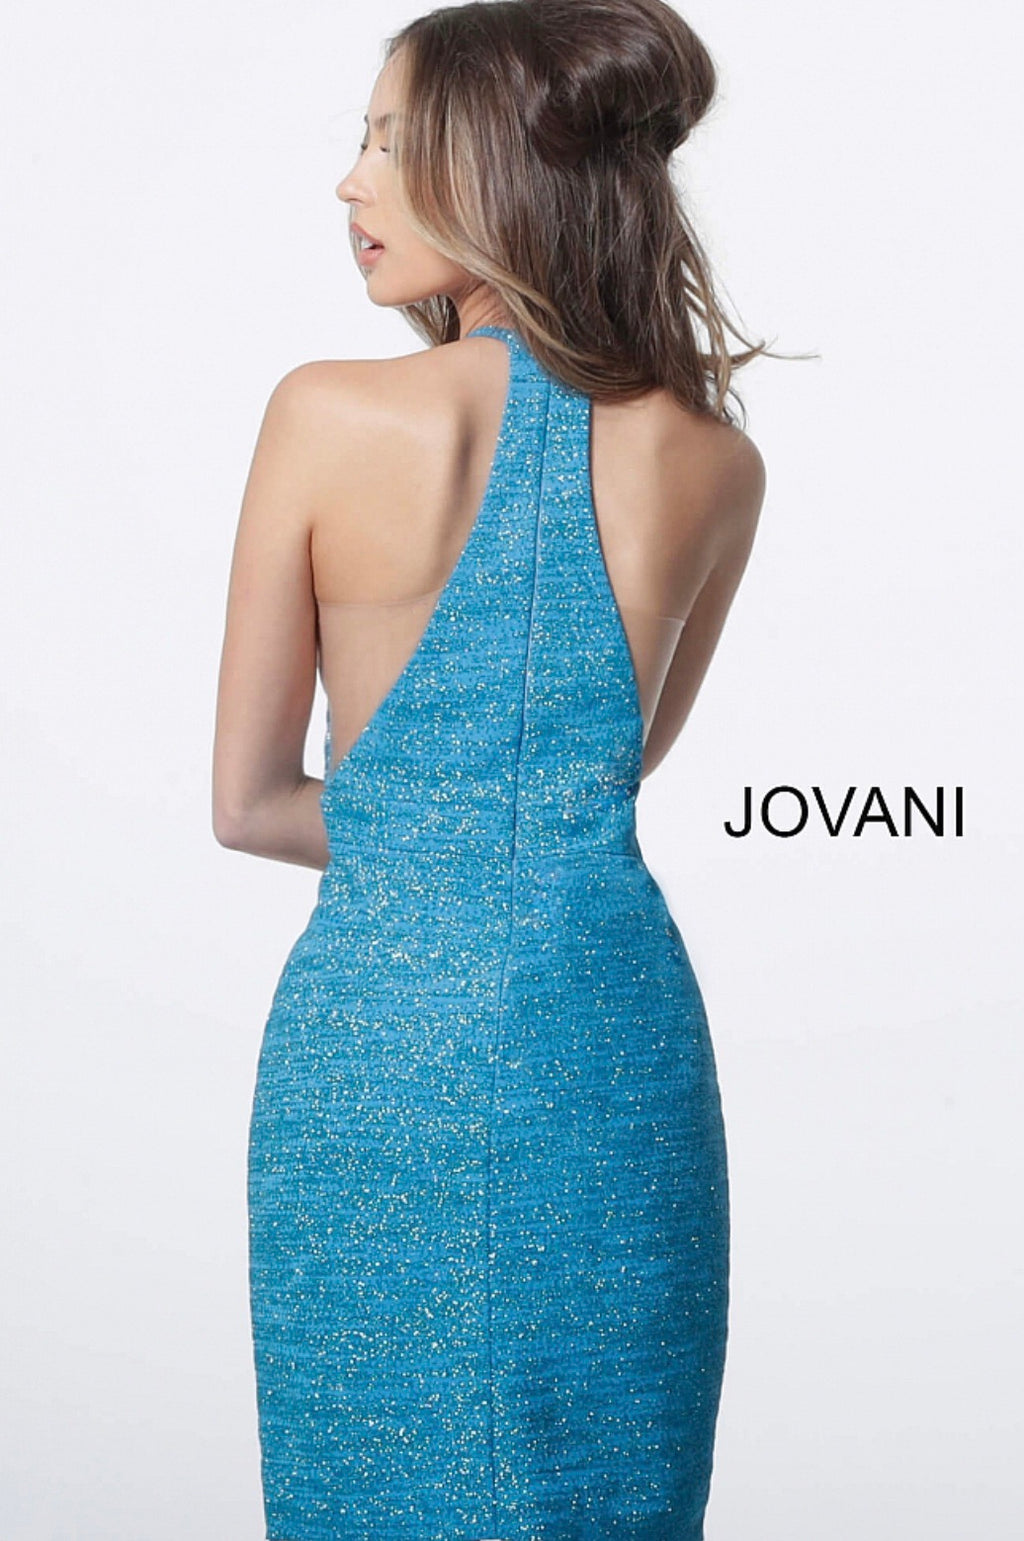 JOVANI 1202 Glitter Cocktail Dress - CYC Boutique